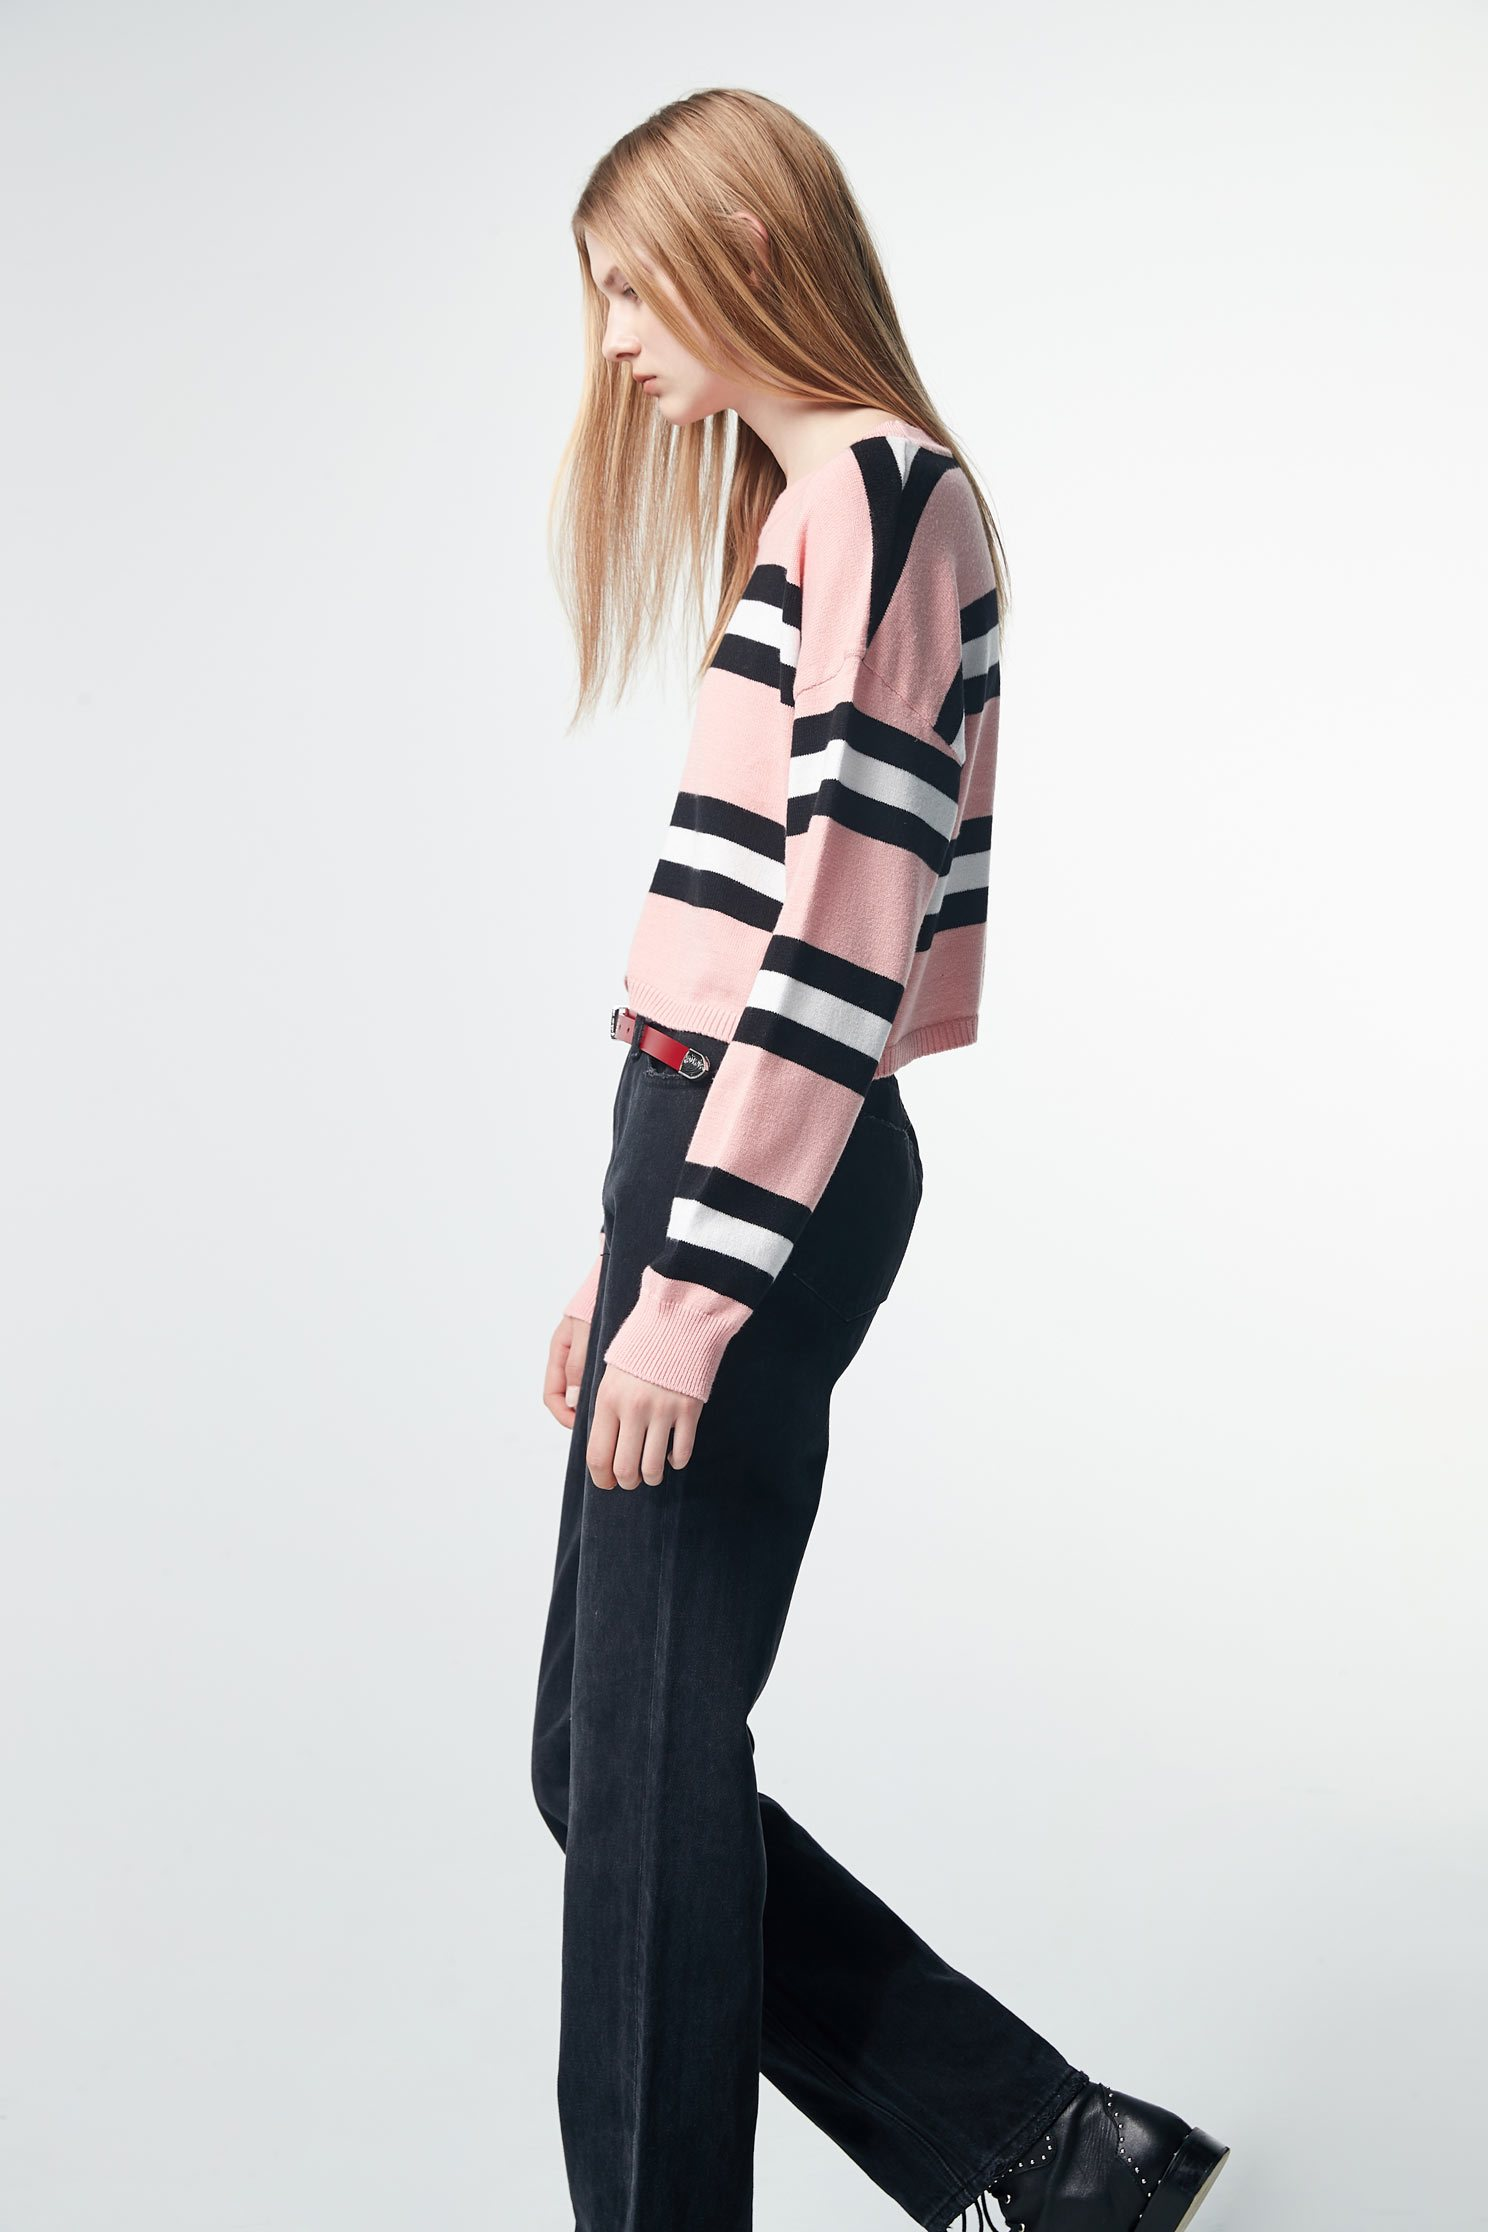 Round-necked striped long-sleeved knit sweater,top,roundnecktop,knitting,knittedtop,knittedtop,longsleevetop